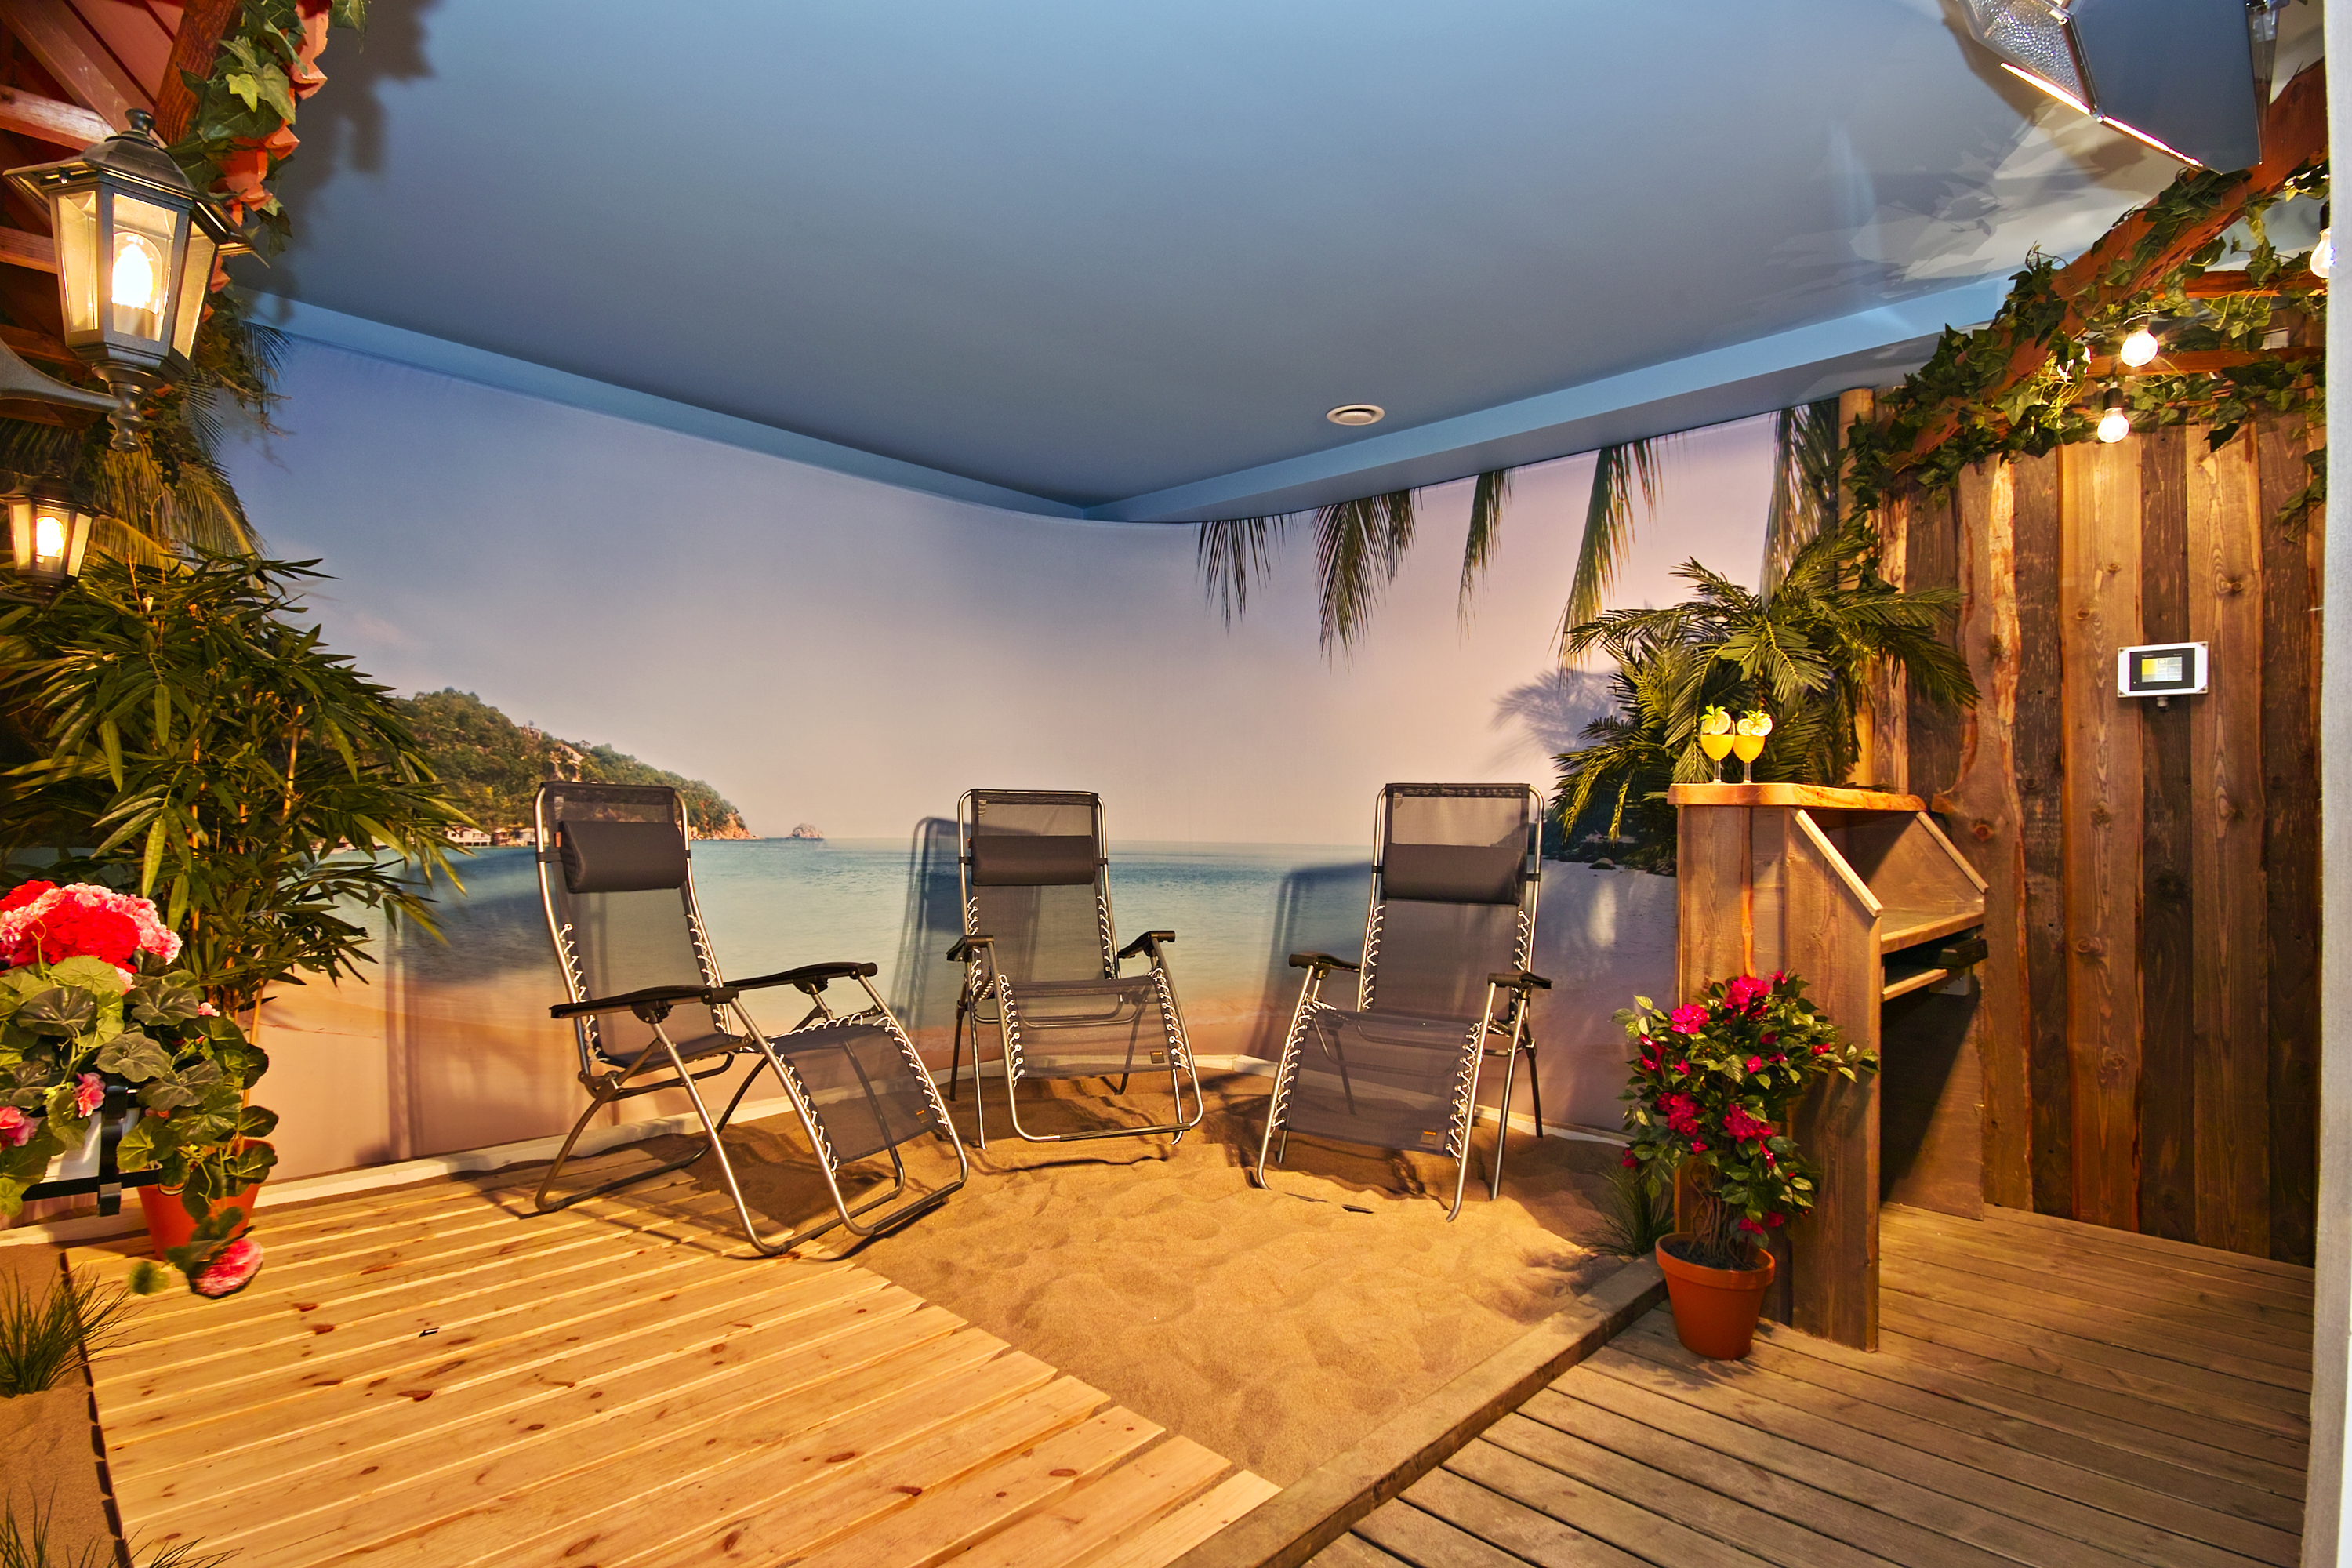 Our Sun Therapy Room